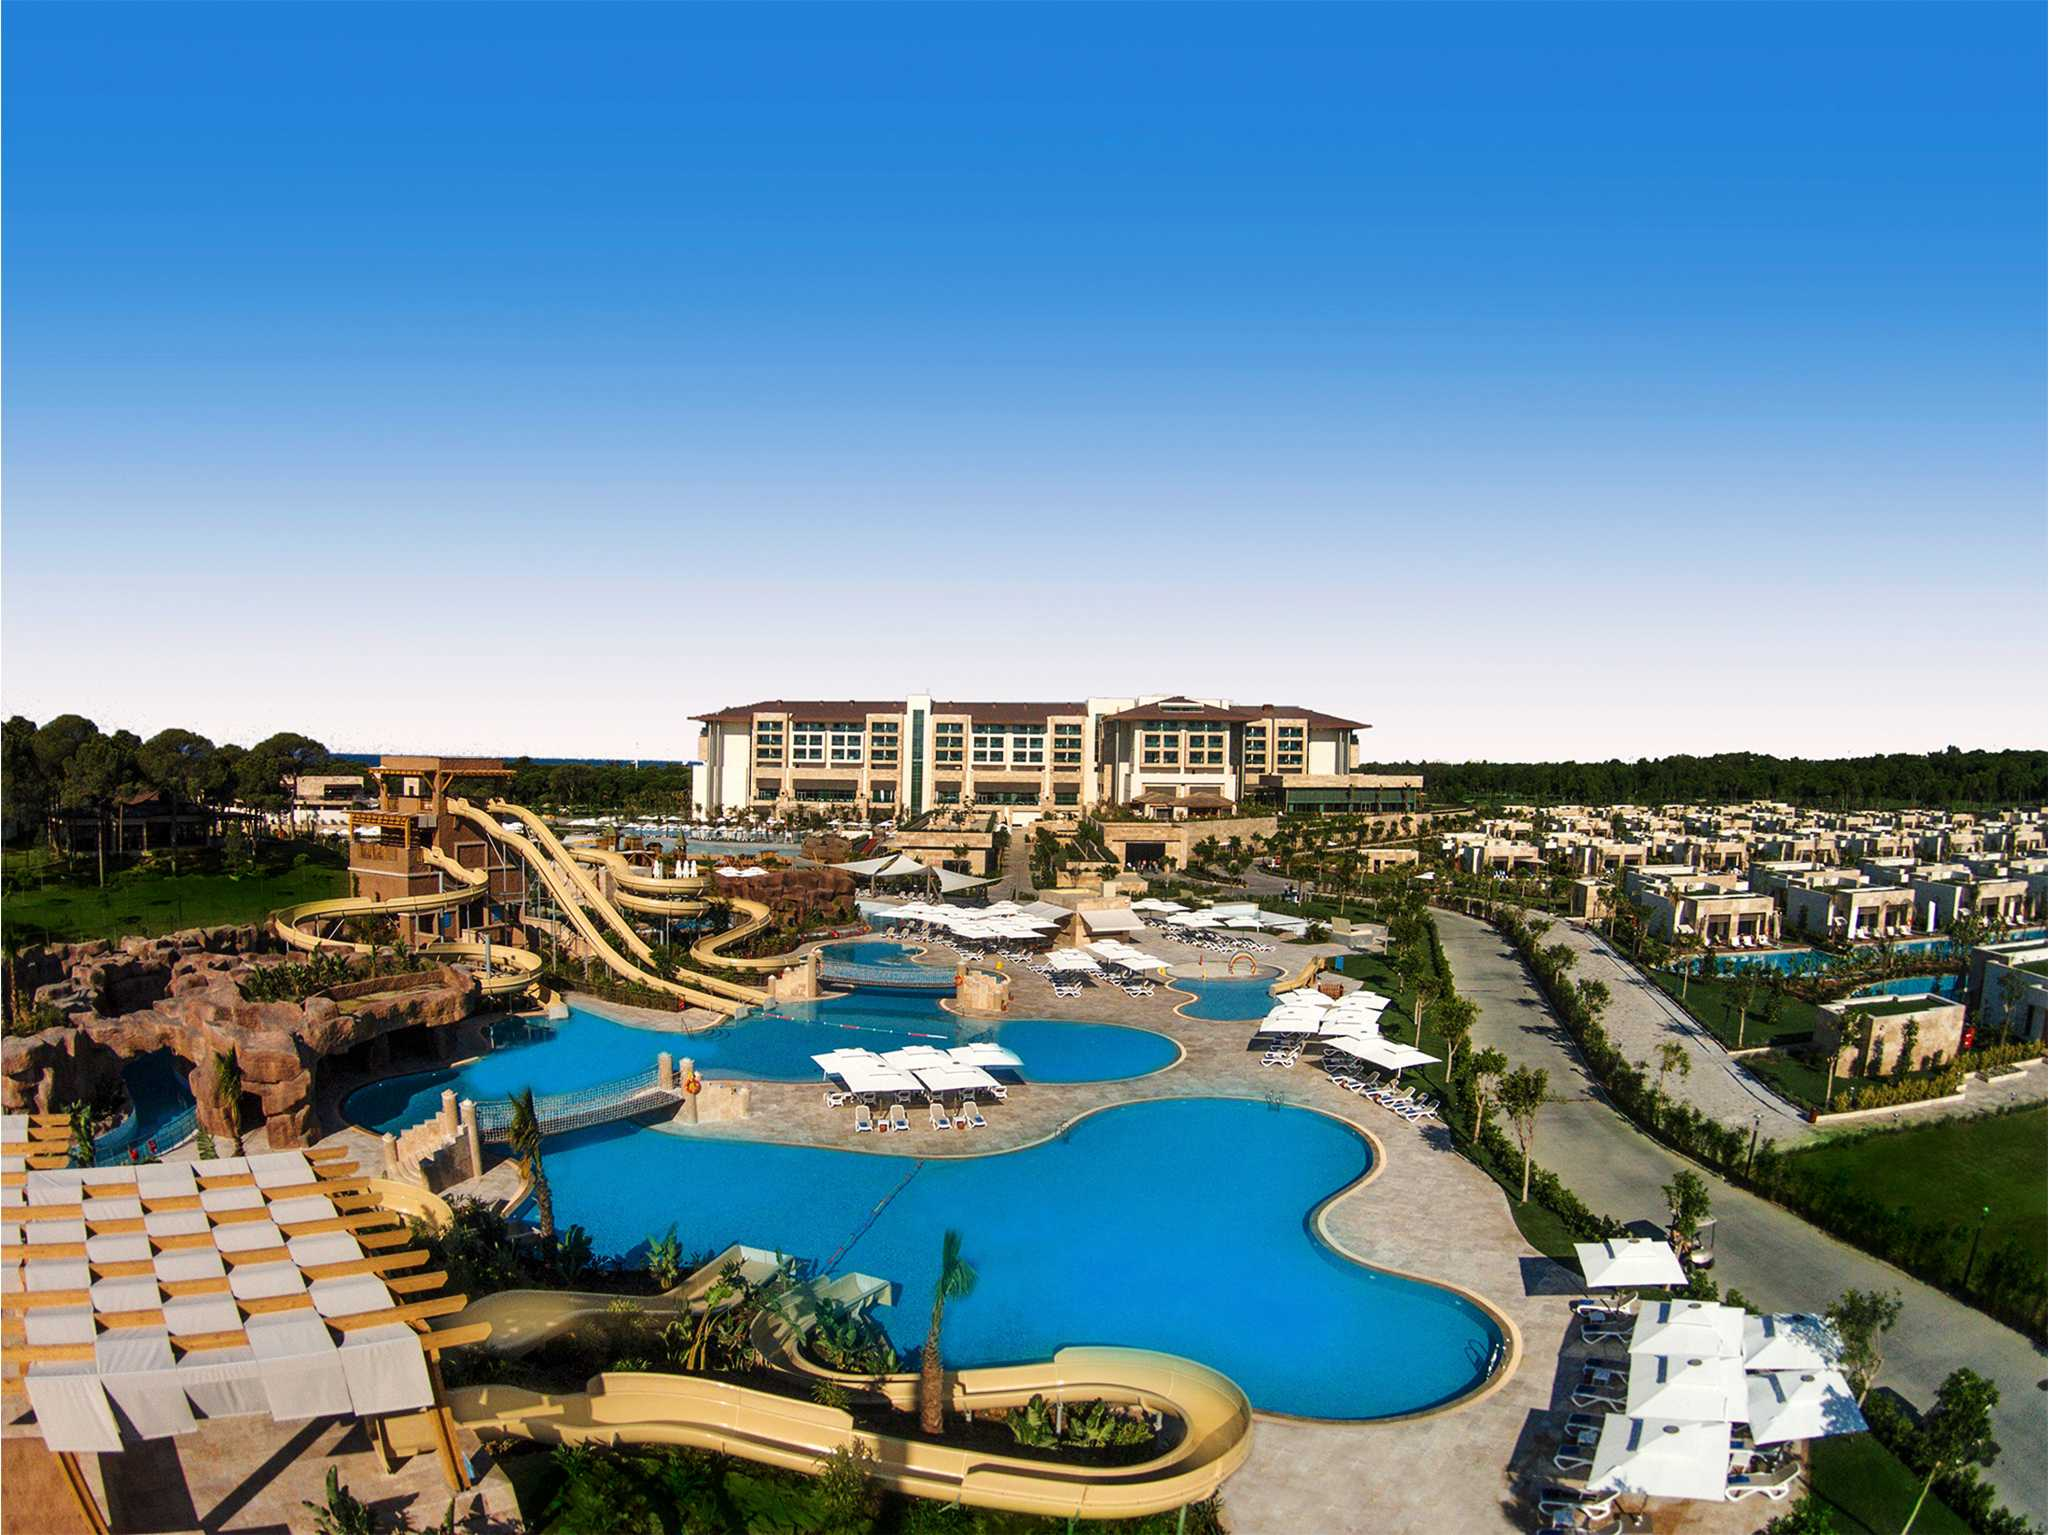 Hotel Regnum Carya Golf & Spa Resort Belek-Aquaworld